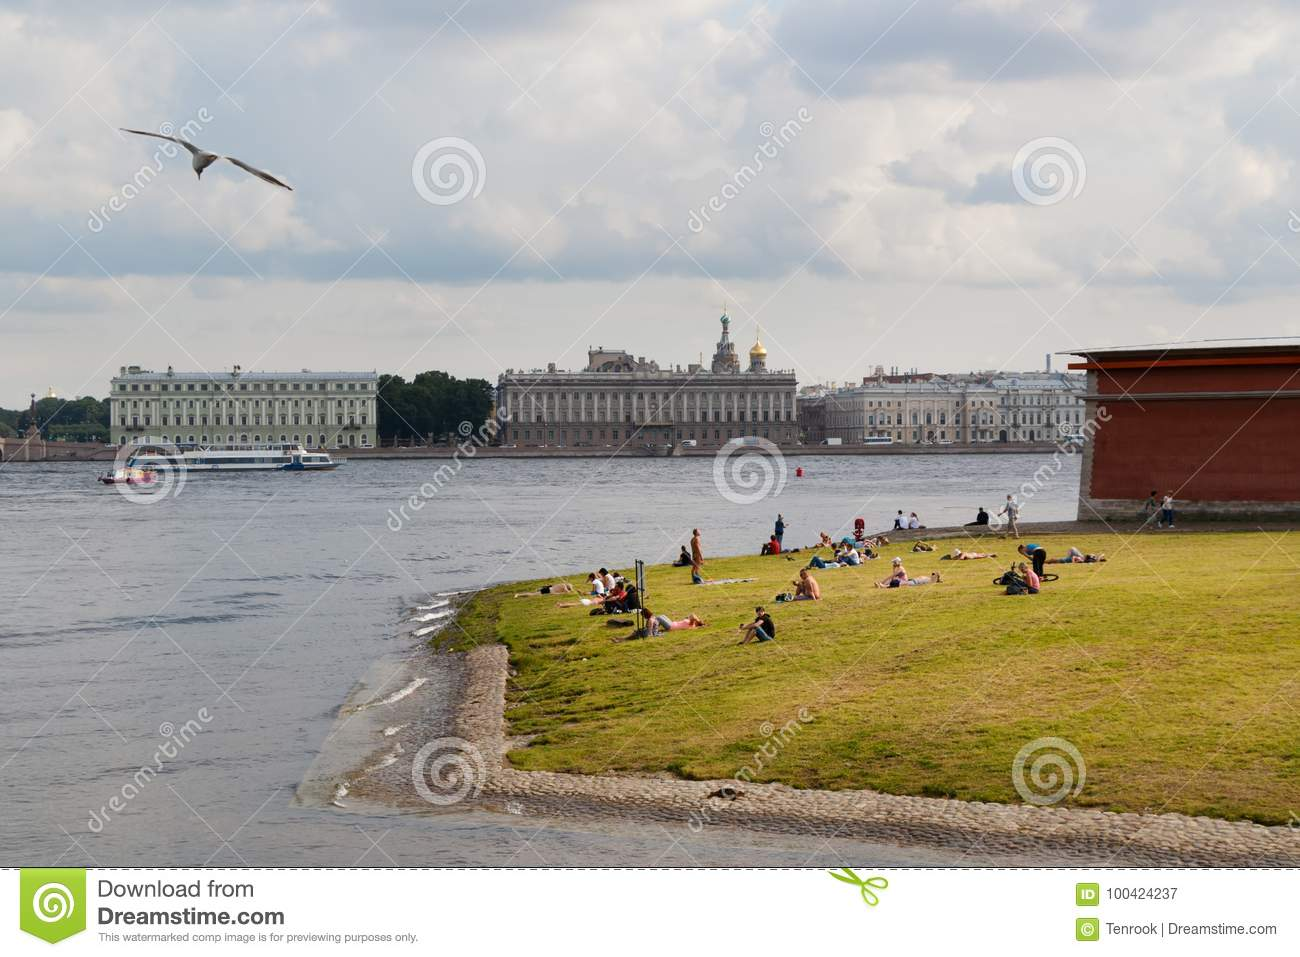 SAINT PETERSBURG, RUSSIA - AUGUST 18, 2017: People resting on the banks of the Neva river at the Peter-Paul fortress